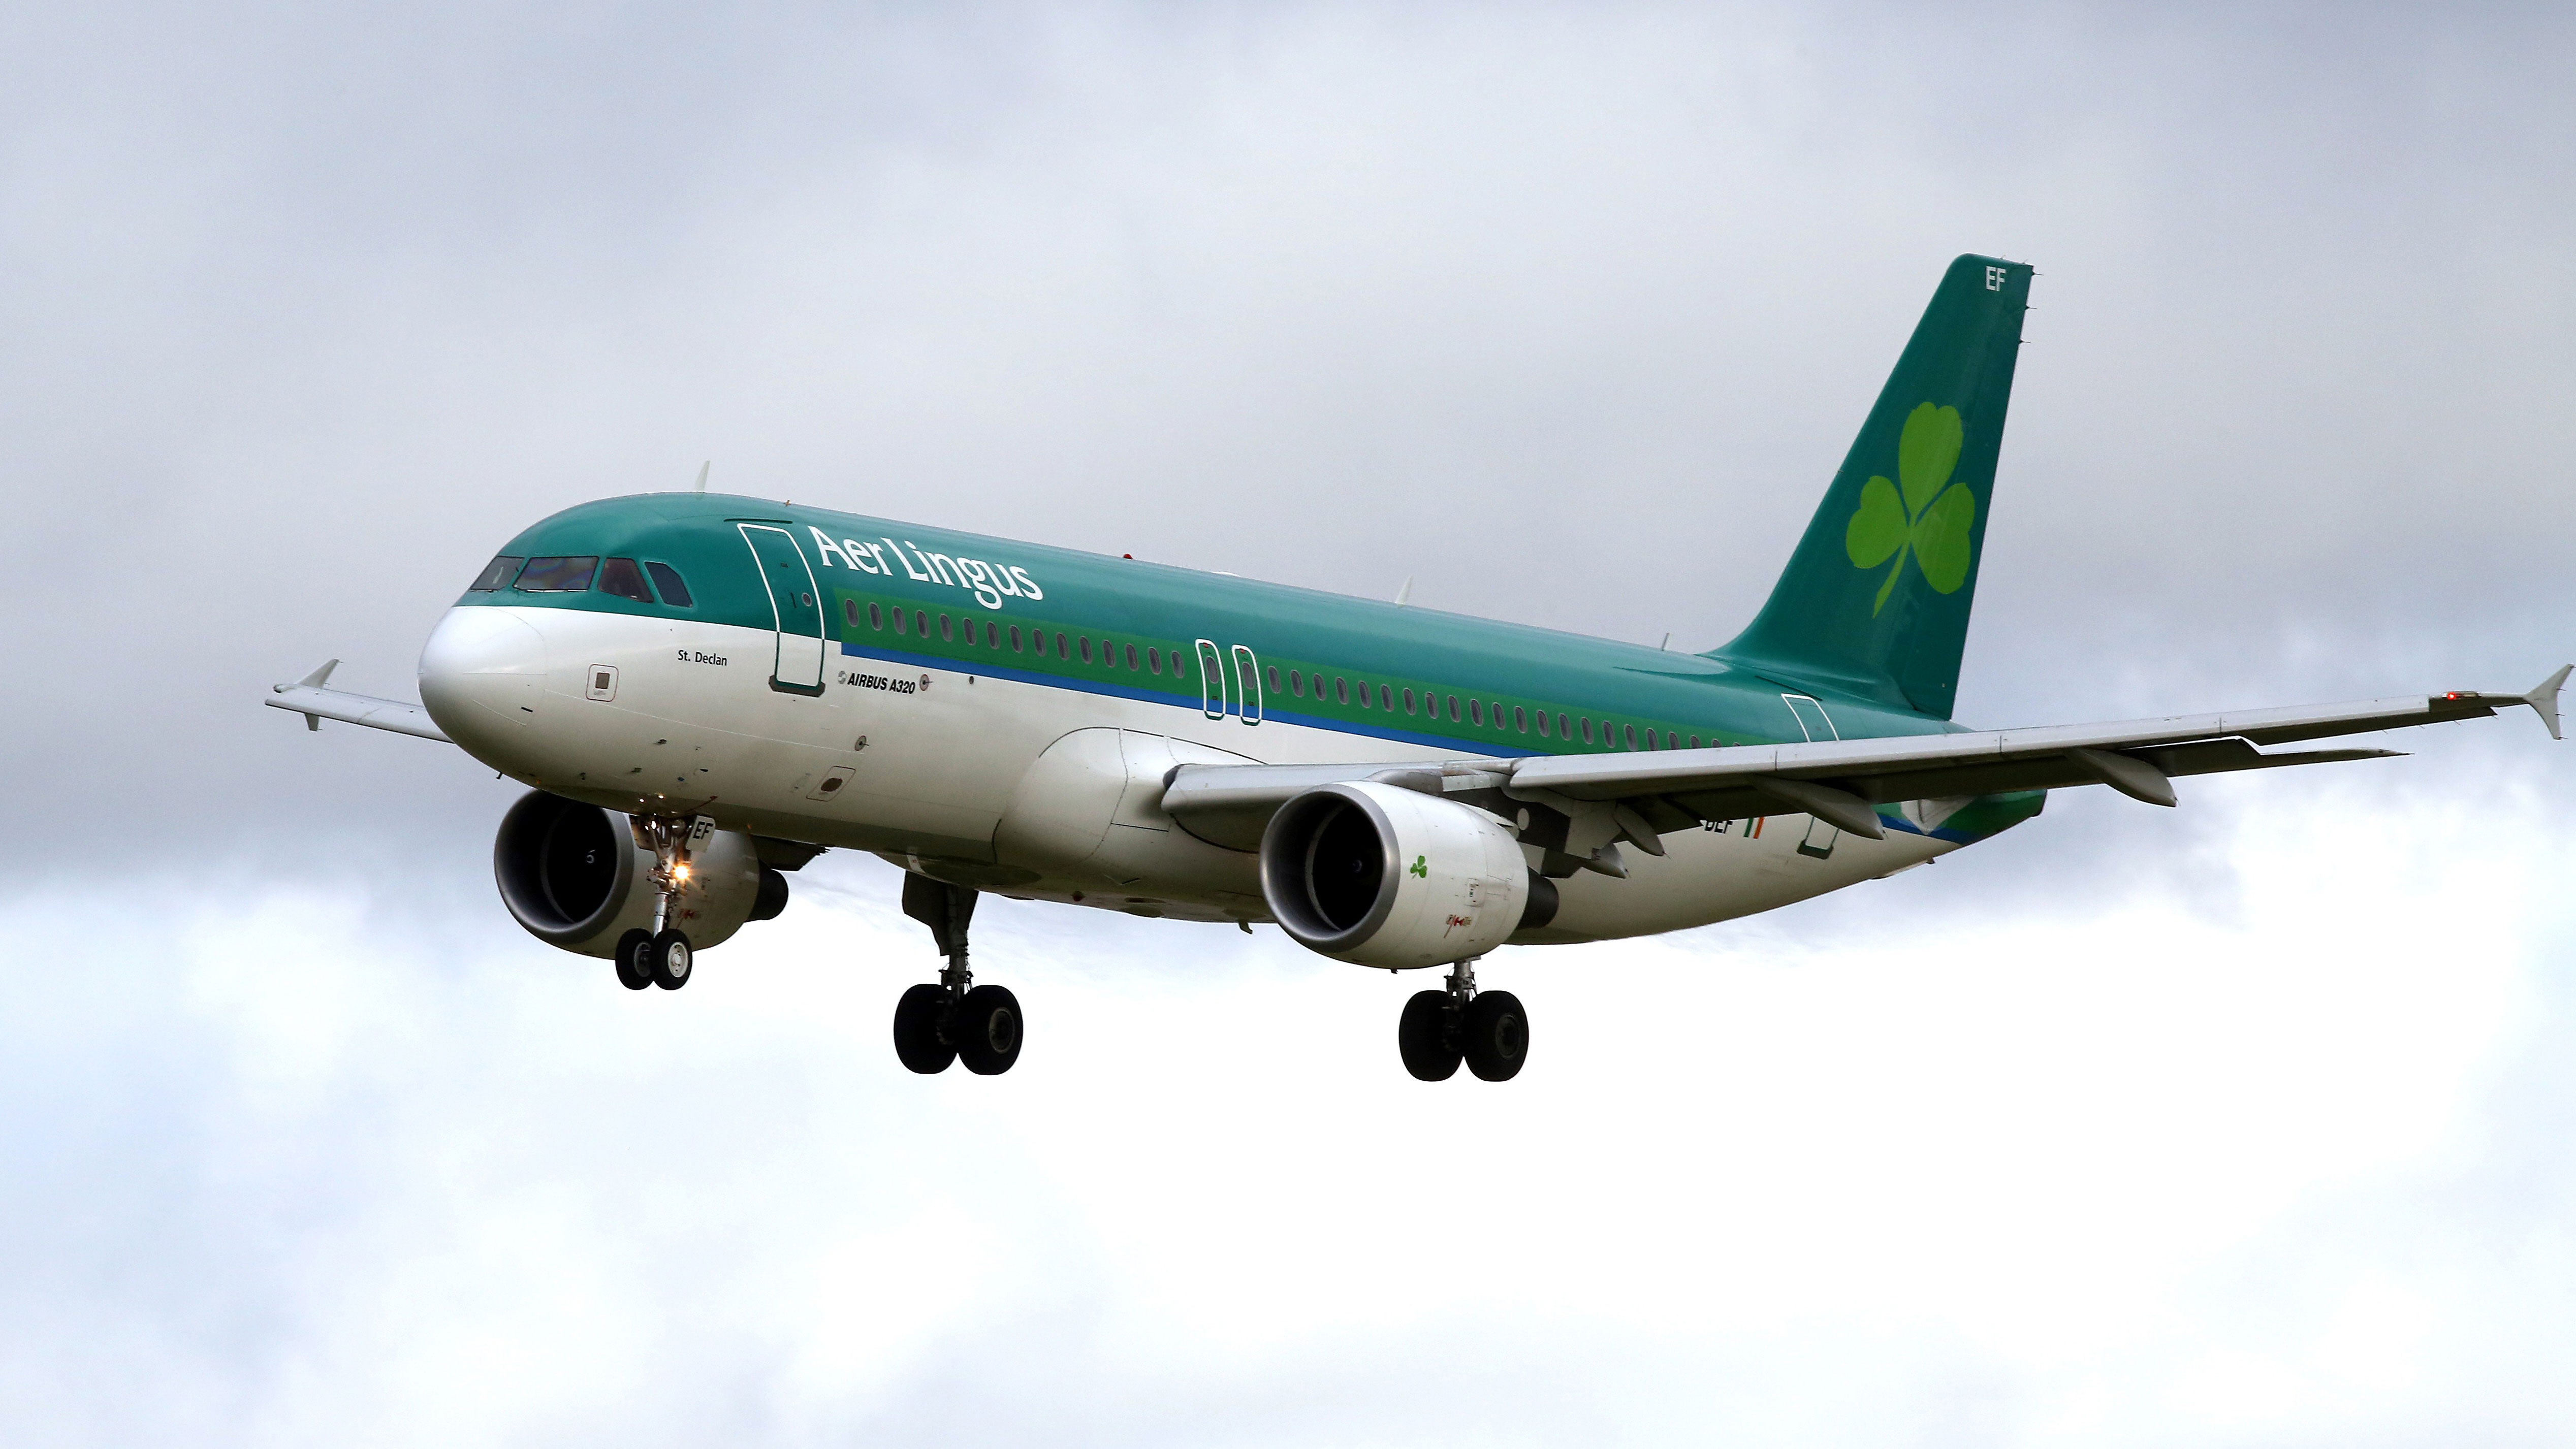 A man died on an Aer Lingus flight on Sunday after biting another passenger.